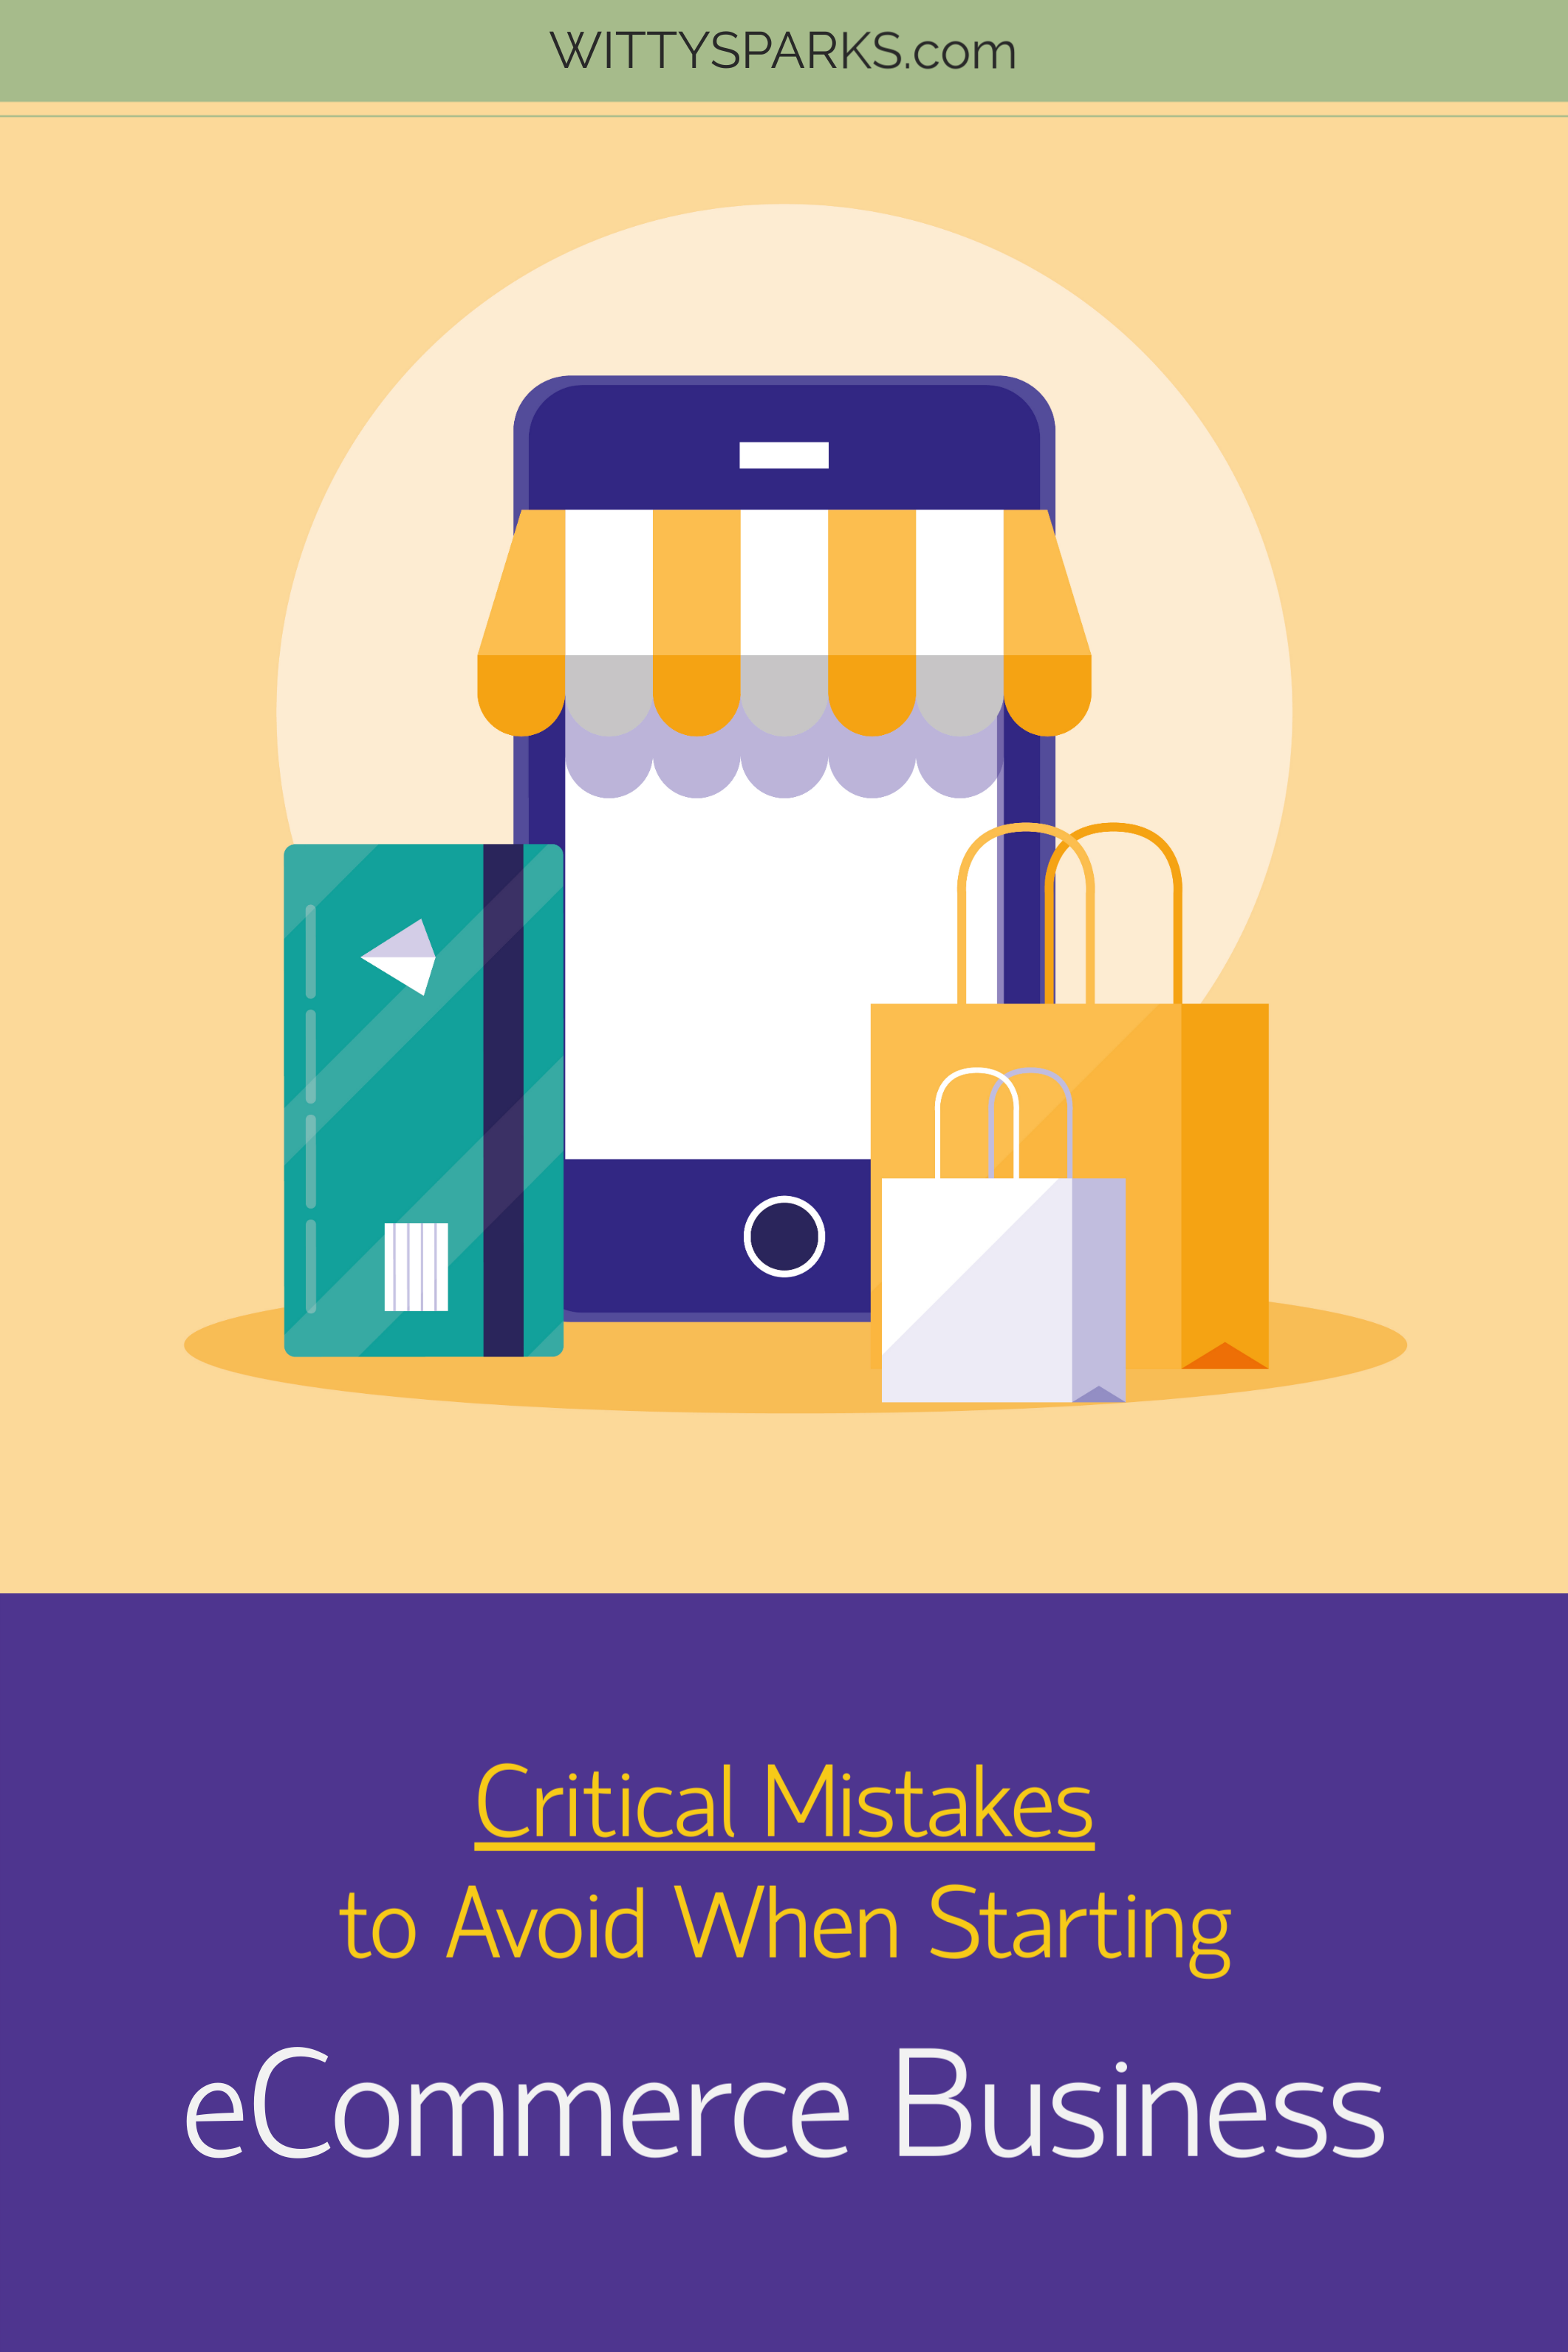 eCommerce businesses: Critical mistakes to avoid.